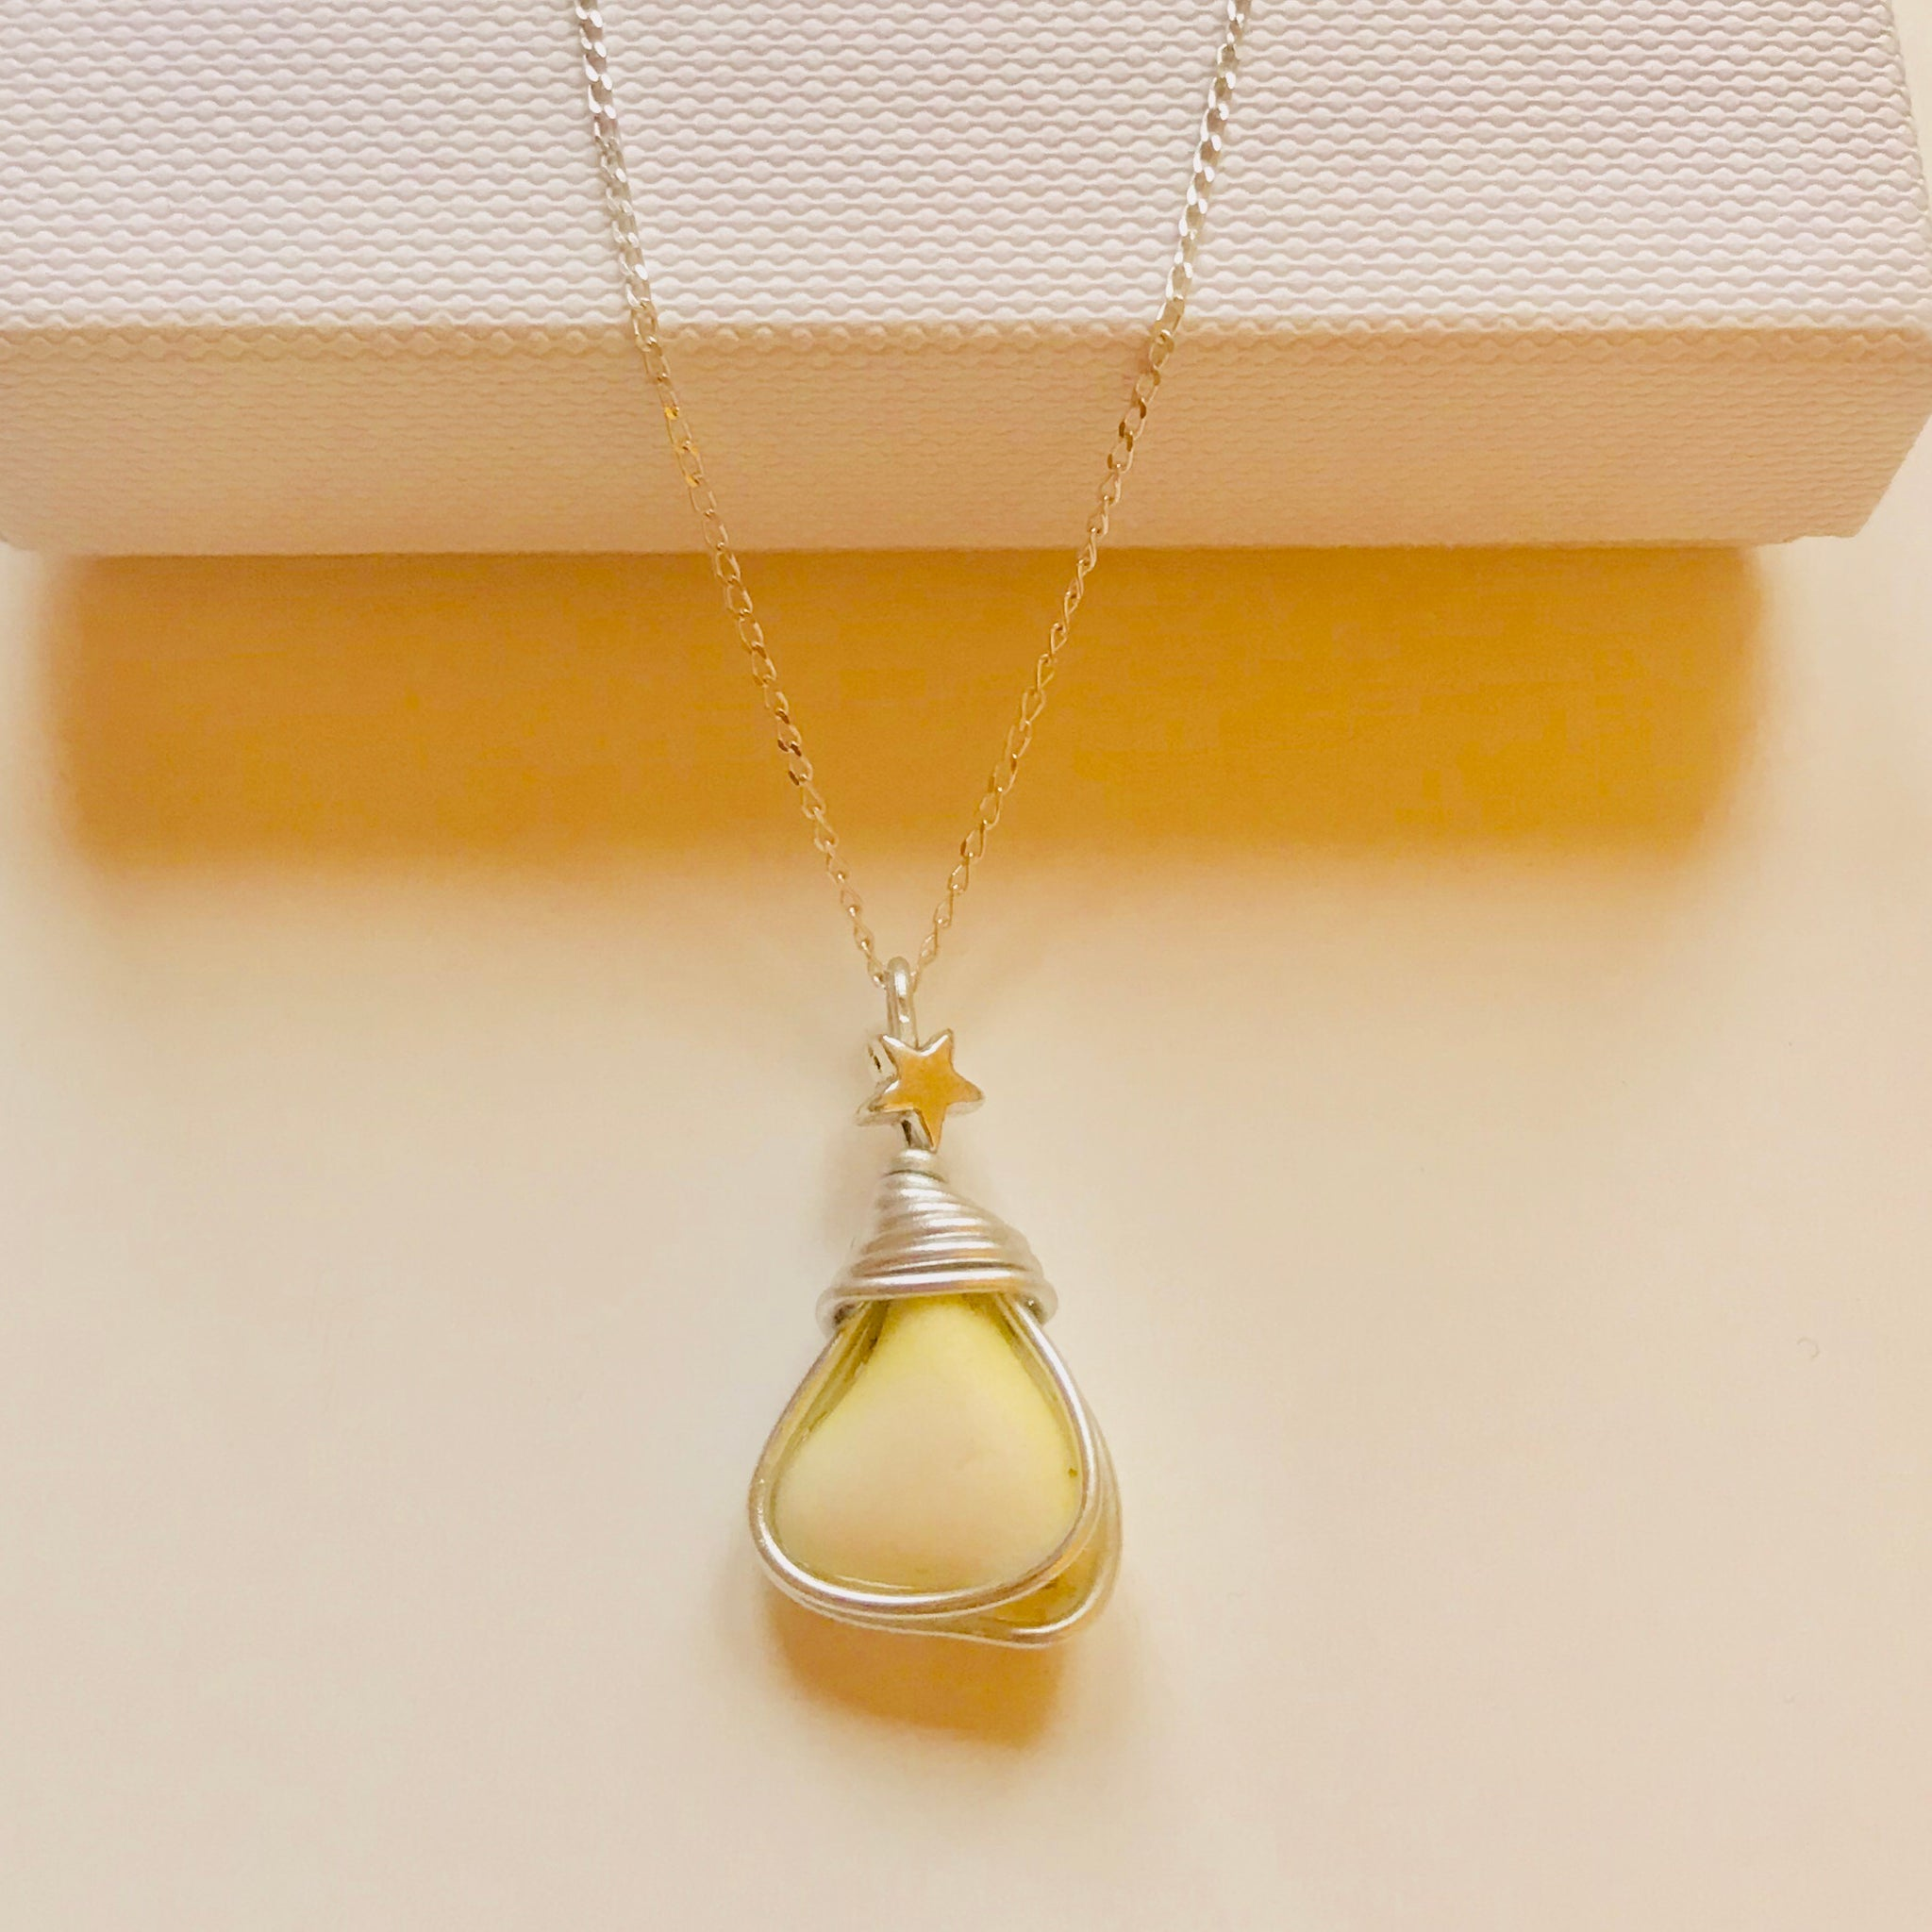 "Yellow Seaham Milk Glass Mini Stars Pendant On a 20"" Sterling Silver Chain"